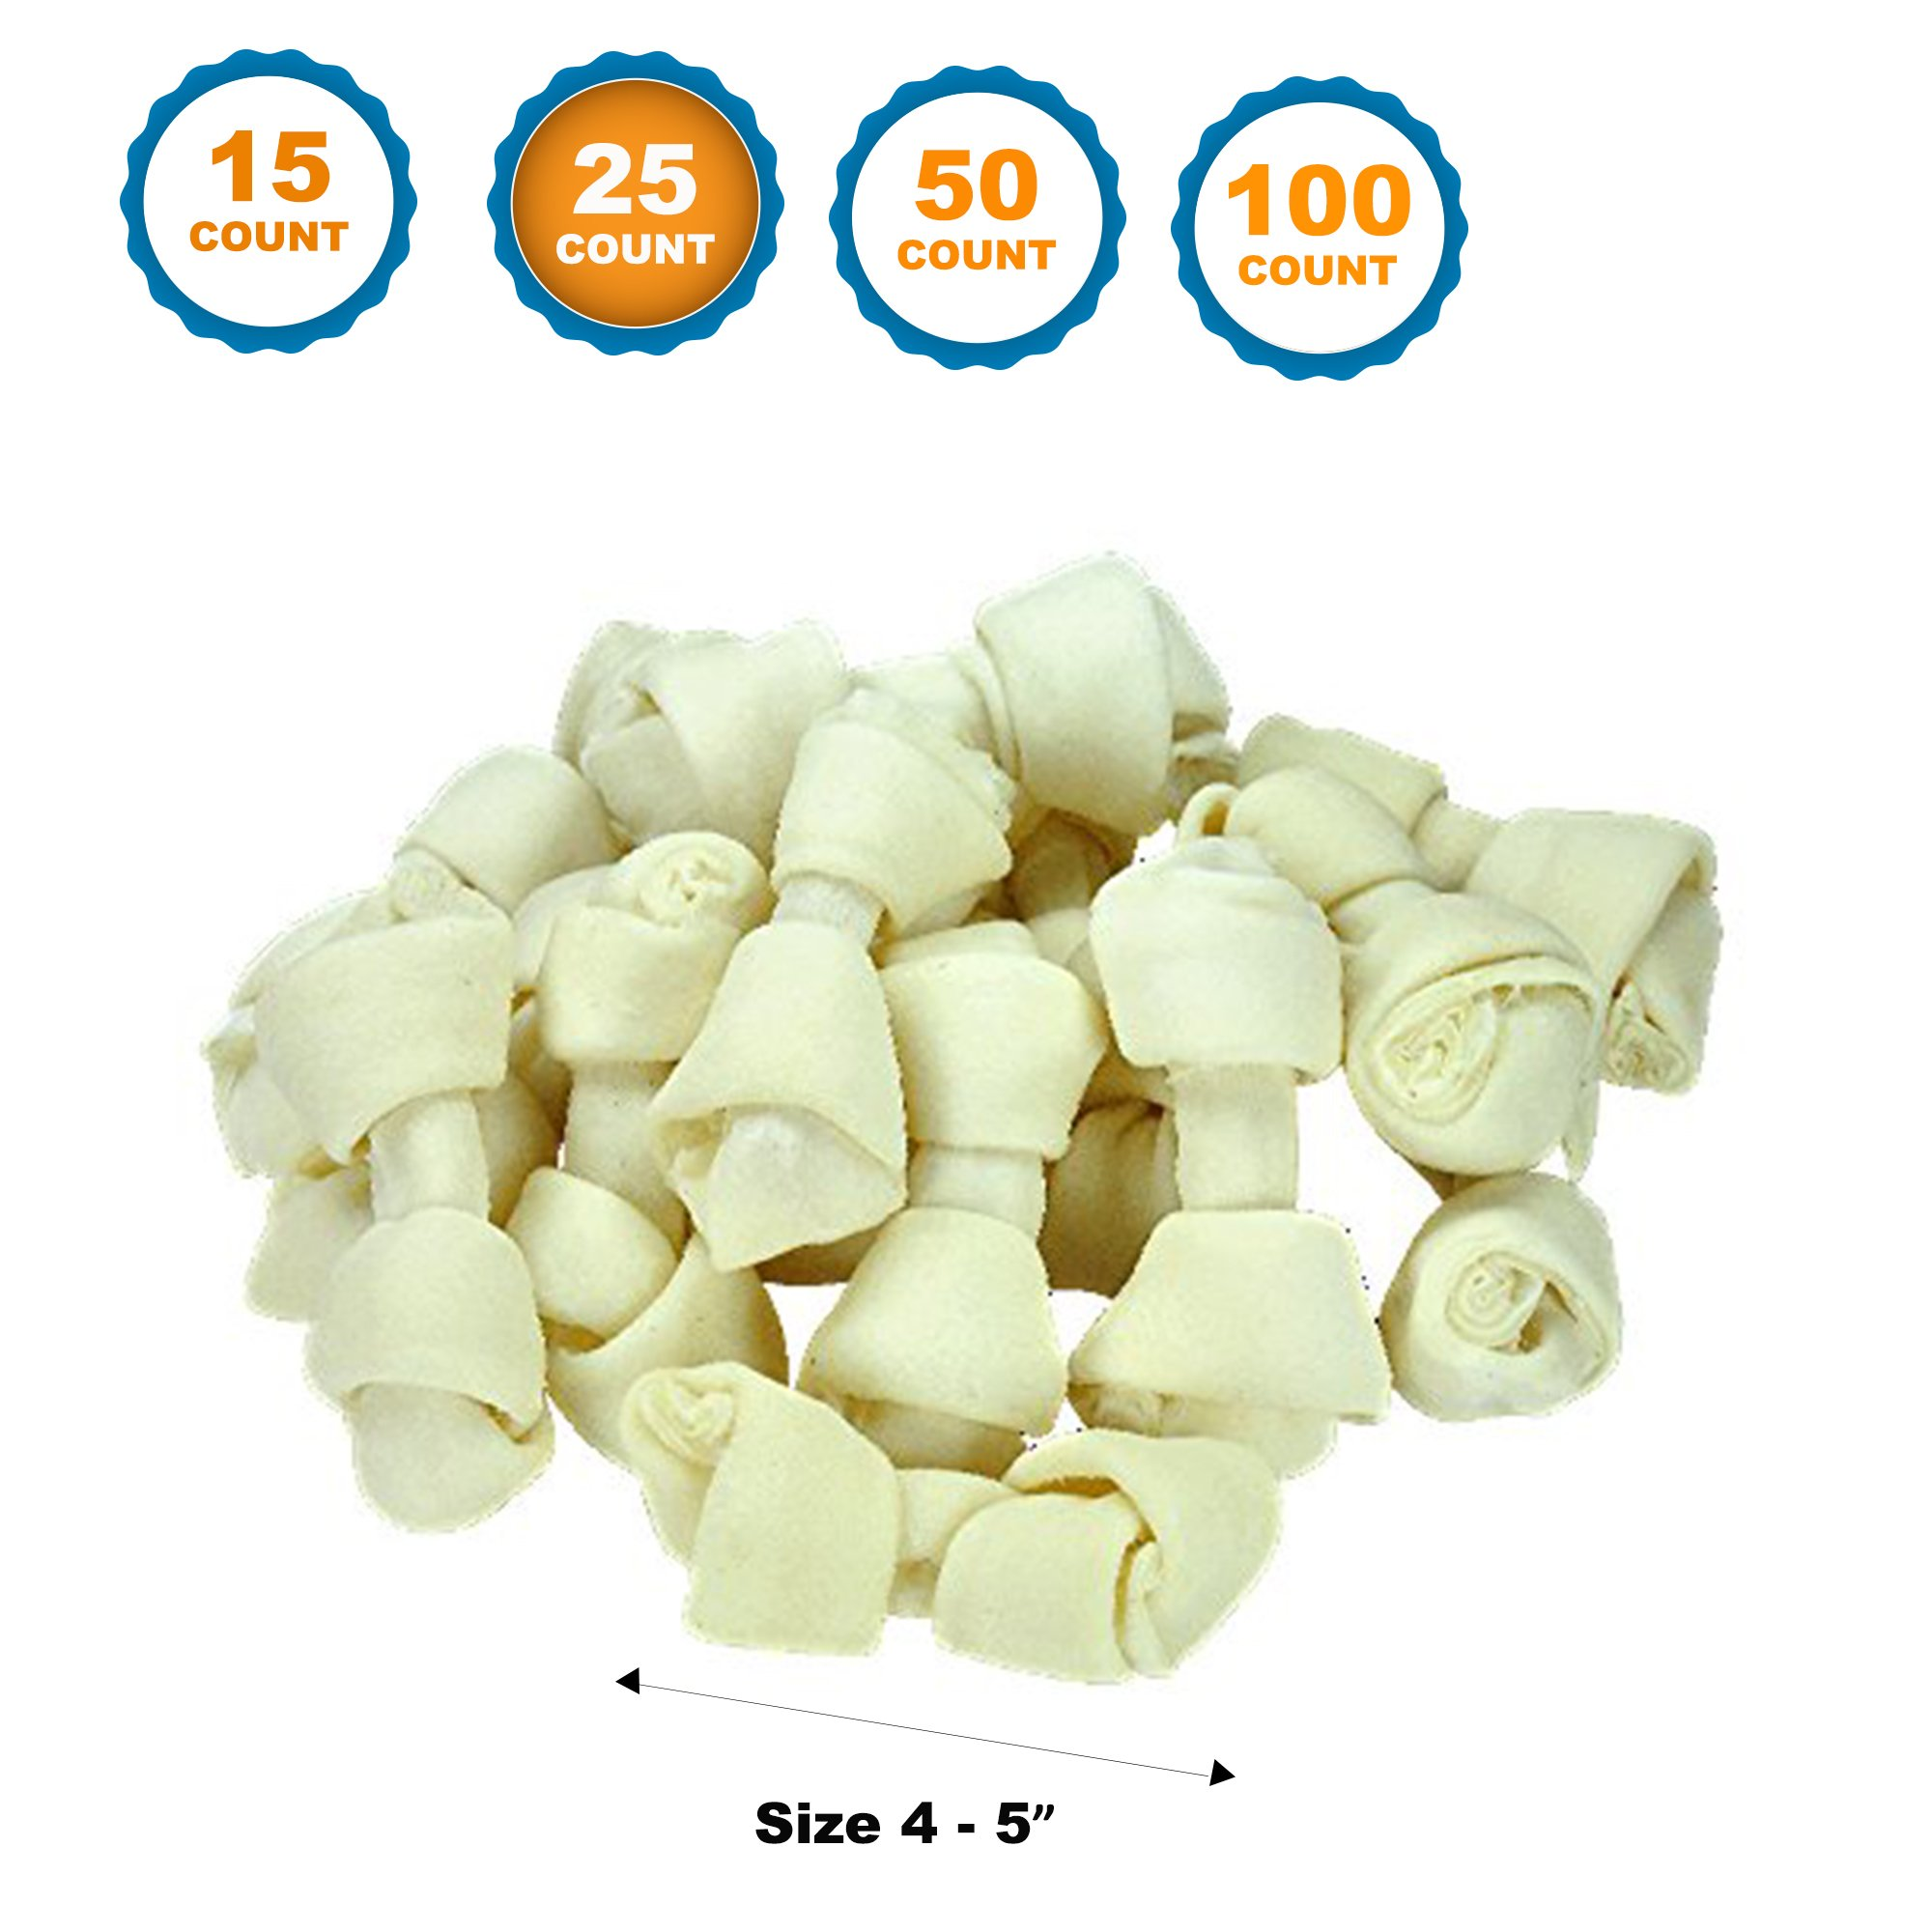 123 Treats 4-5 inch Rawhide Bones for Dogs   Premium Rawhide Bone Chews   Free Range Grass Fed Cattle with No Hormones, Additives or Chemicals (25)